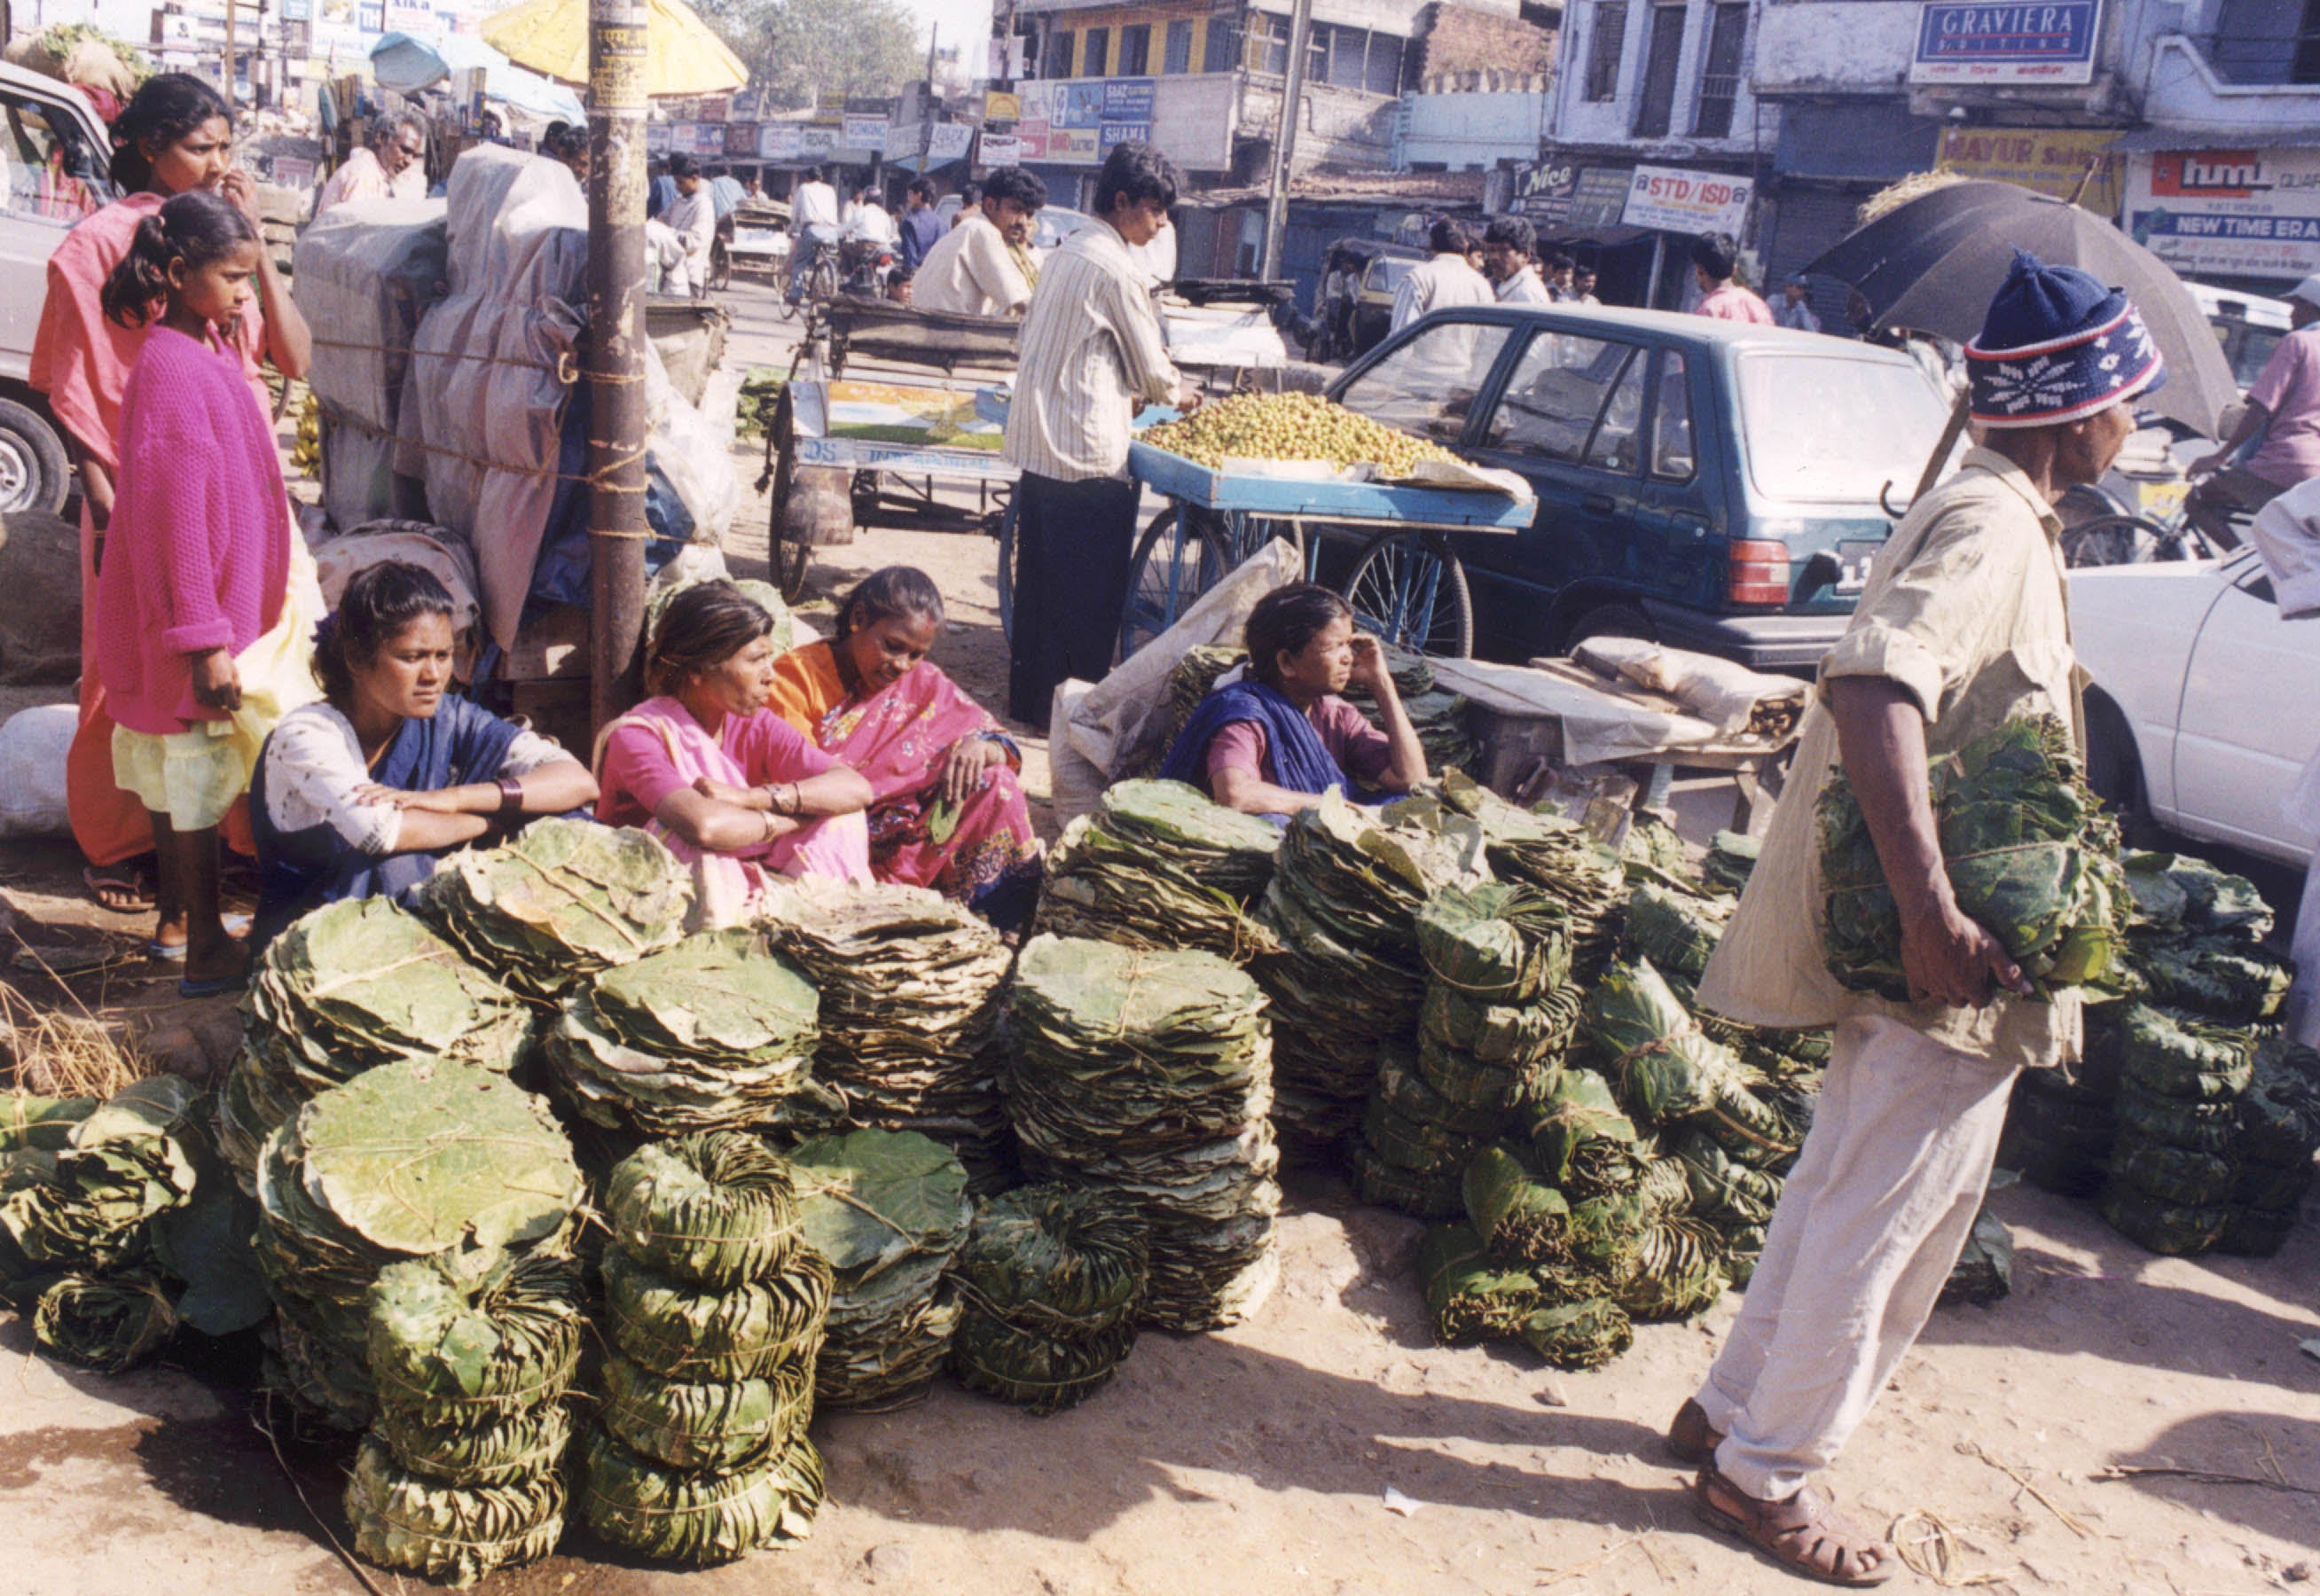 Impoverished indigenous adivasis sell leaves and wood in Ranchi market for their livelihood.